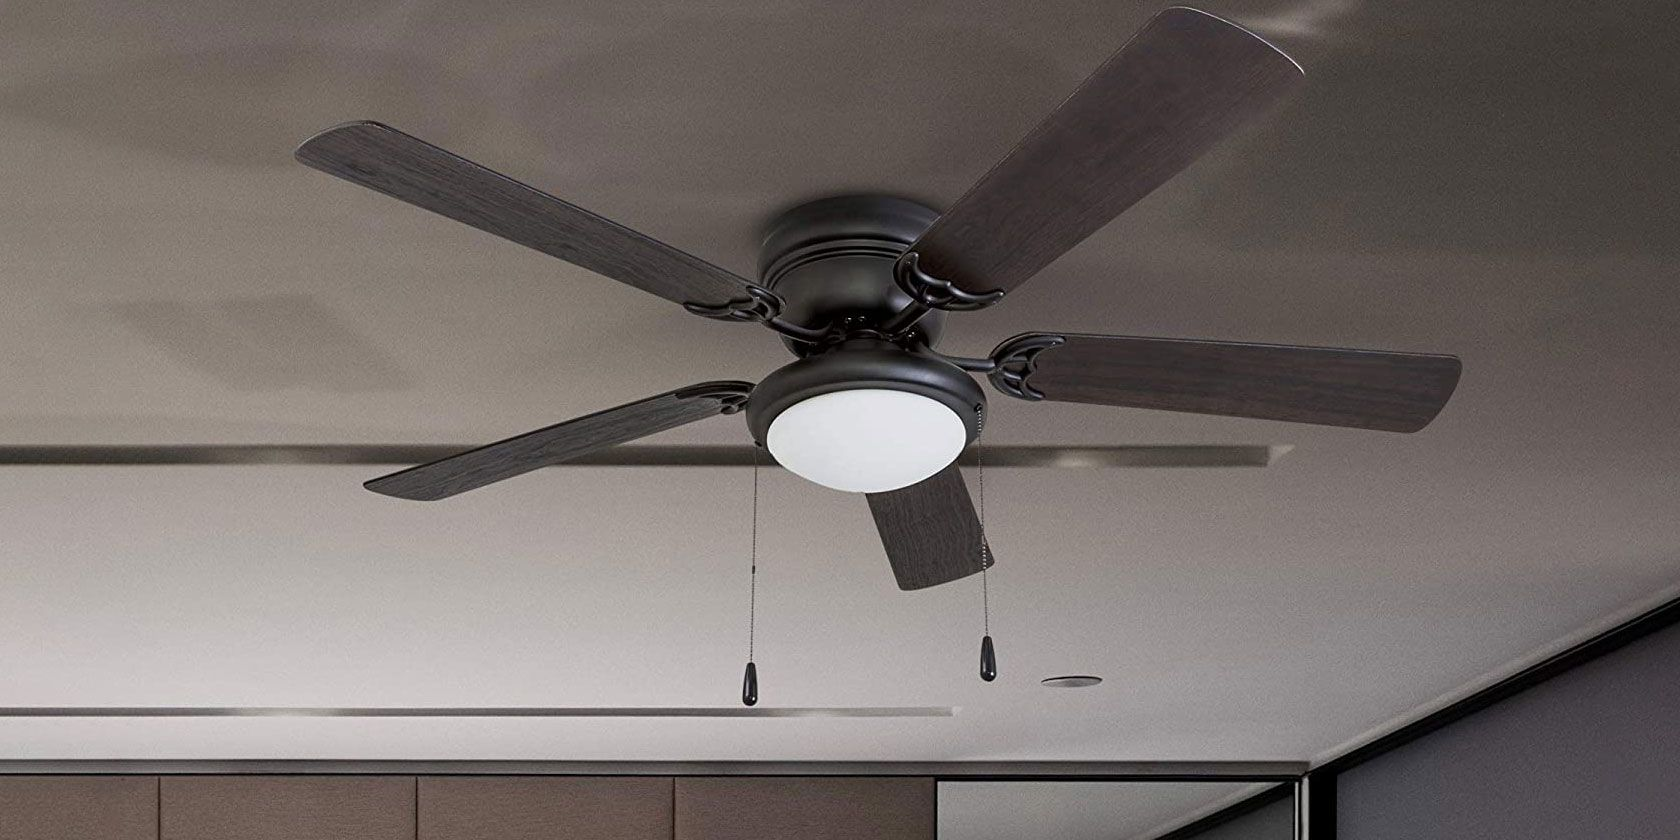 The 9 Best Ceiling Fans To Keep Your Home Cool Laptrinhx